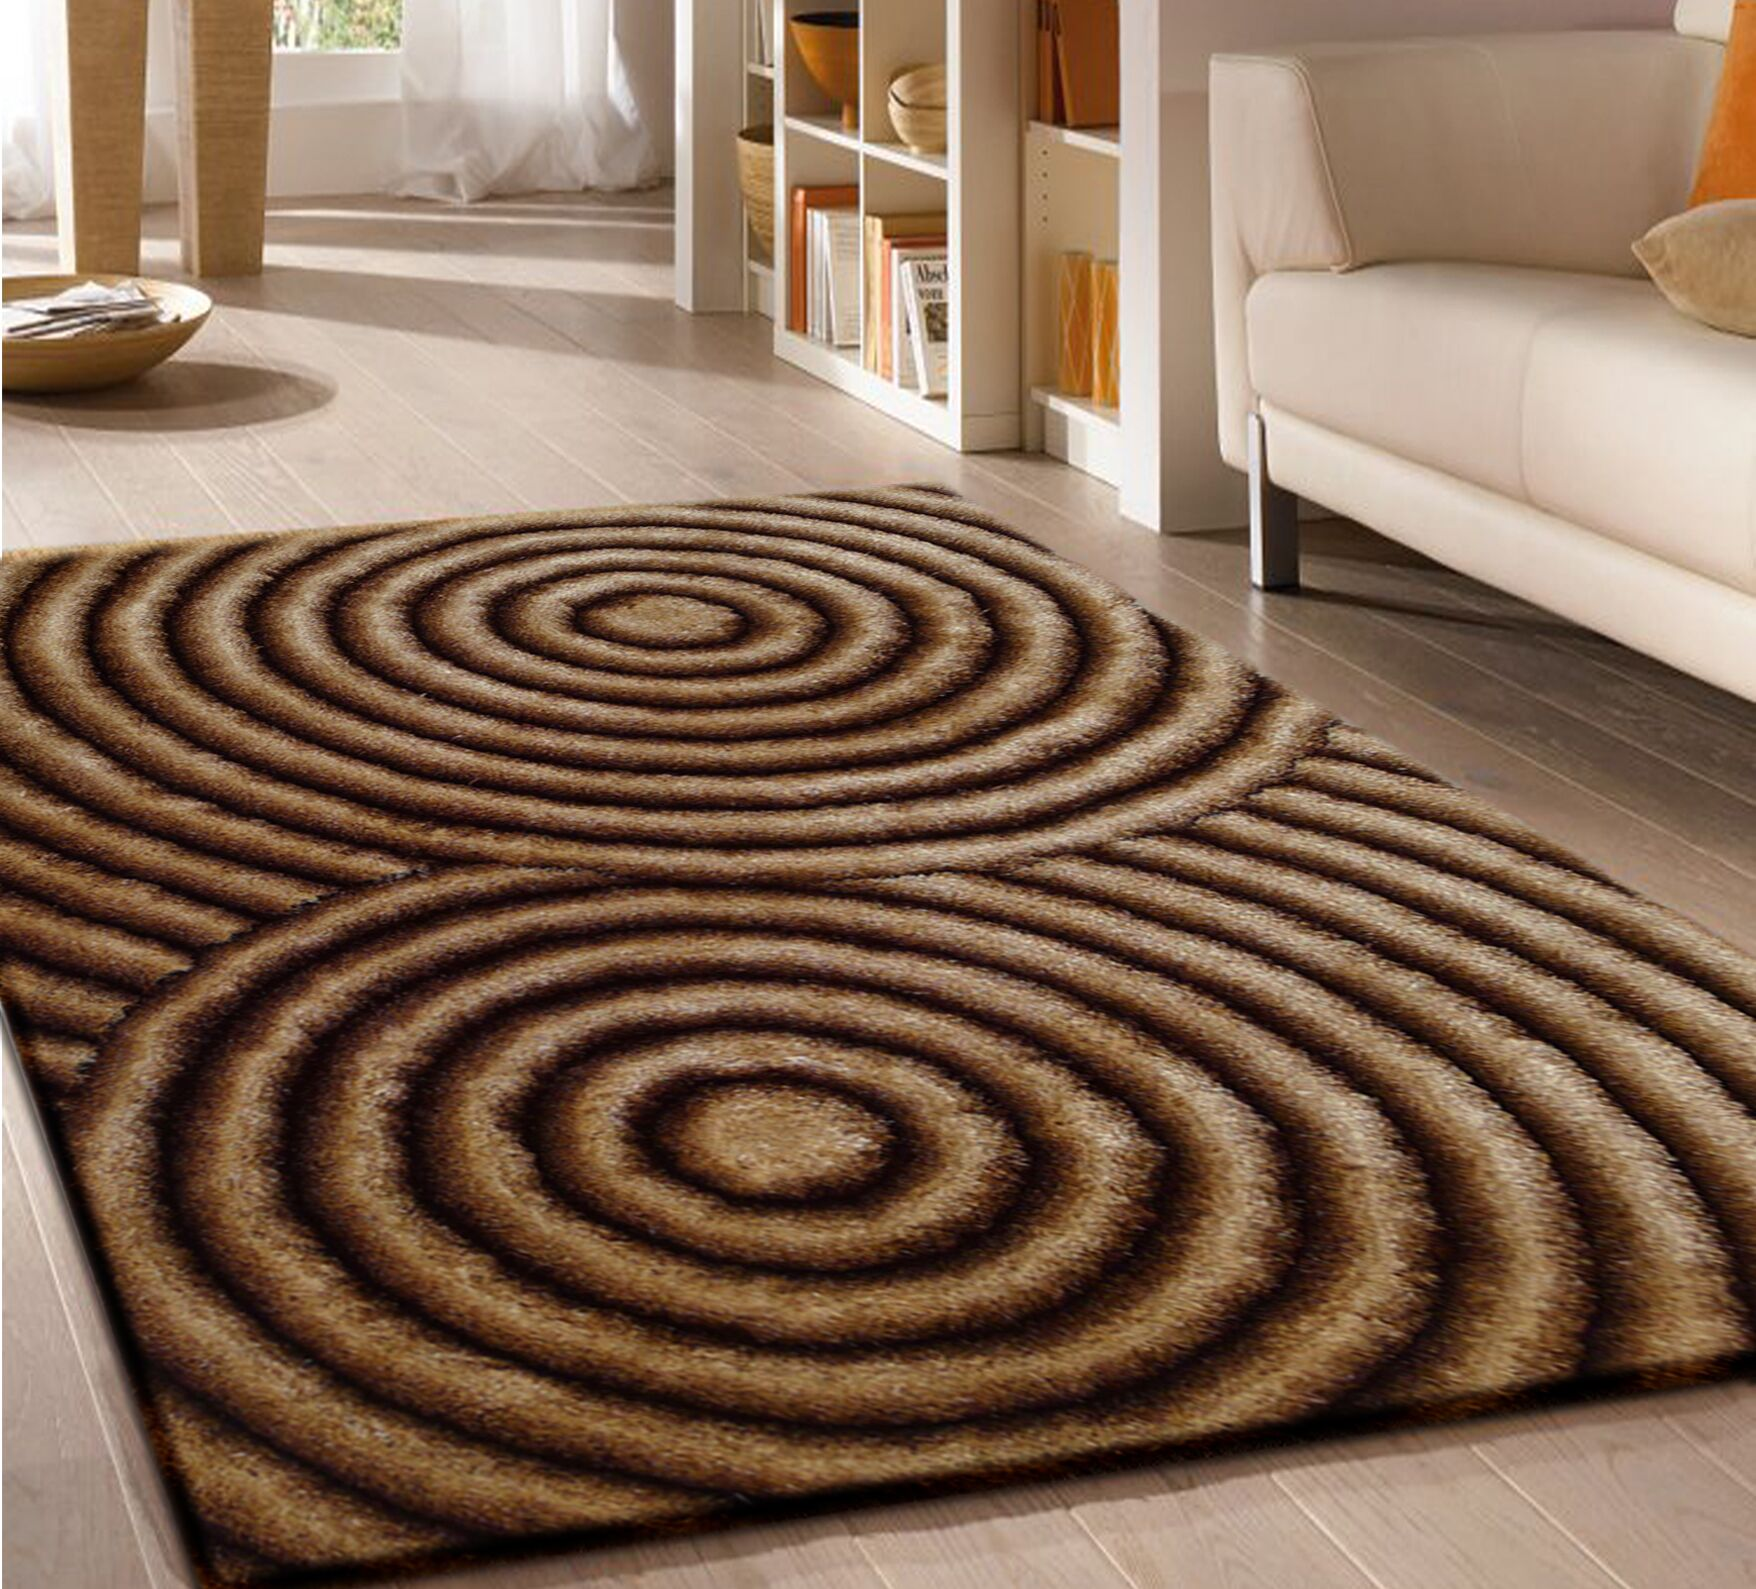 Pavonia Hand-Tufted Gold/Brown Area Rug Rug Size: Rectangle 5' x 7'